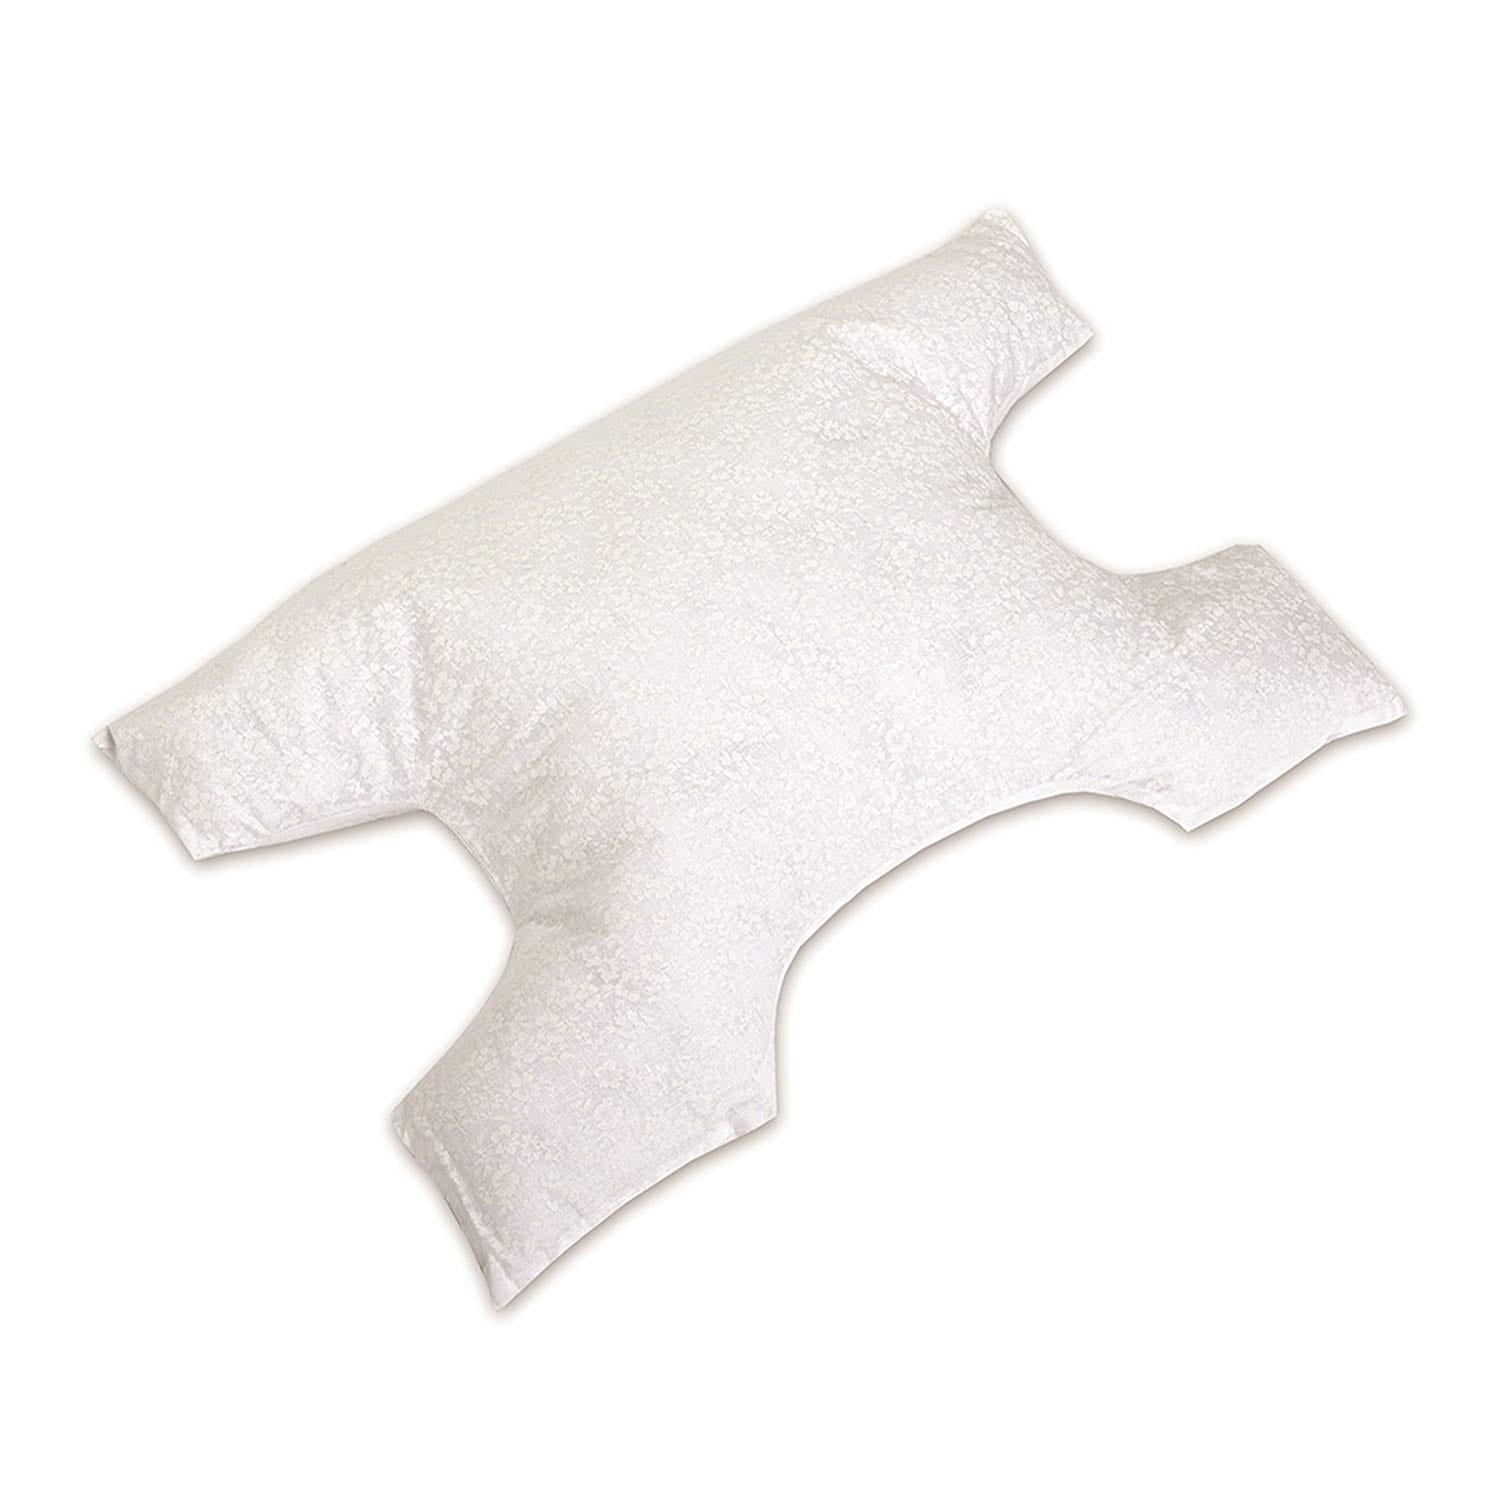 Hermell Products Softeze BreathEasy - The Most Breathable CPAP Pillow review by www.dailysleep.org